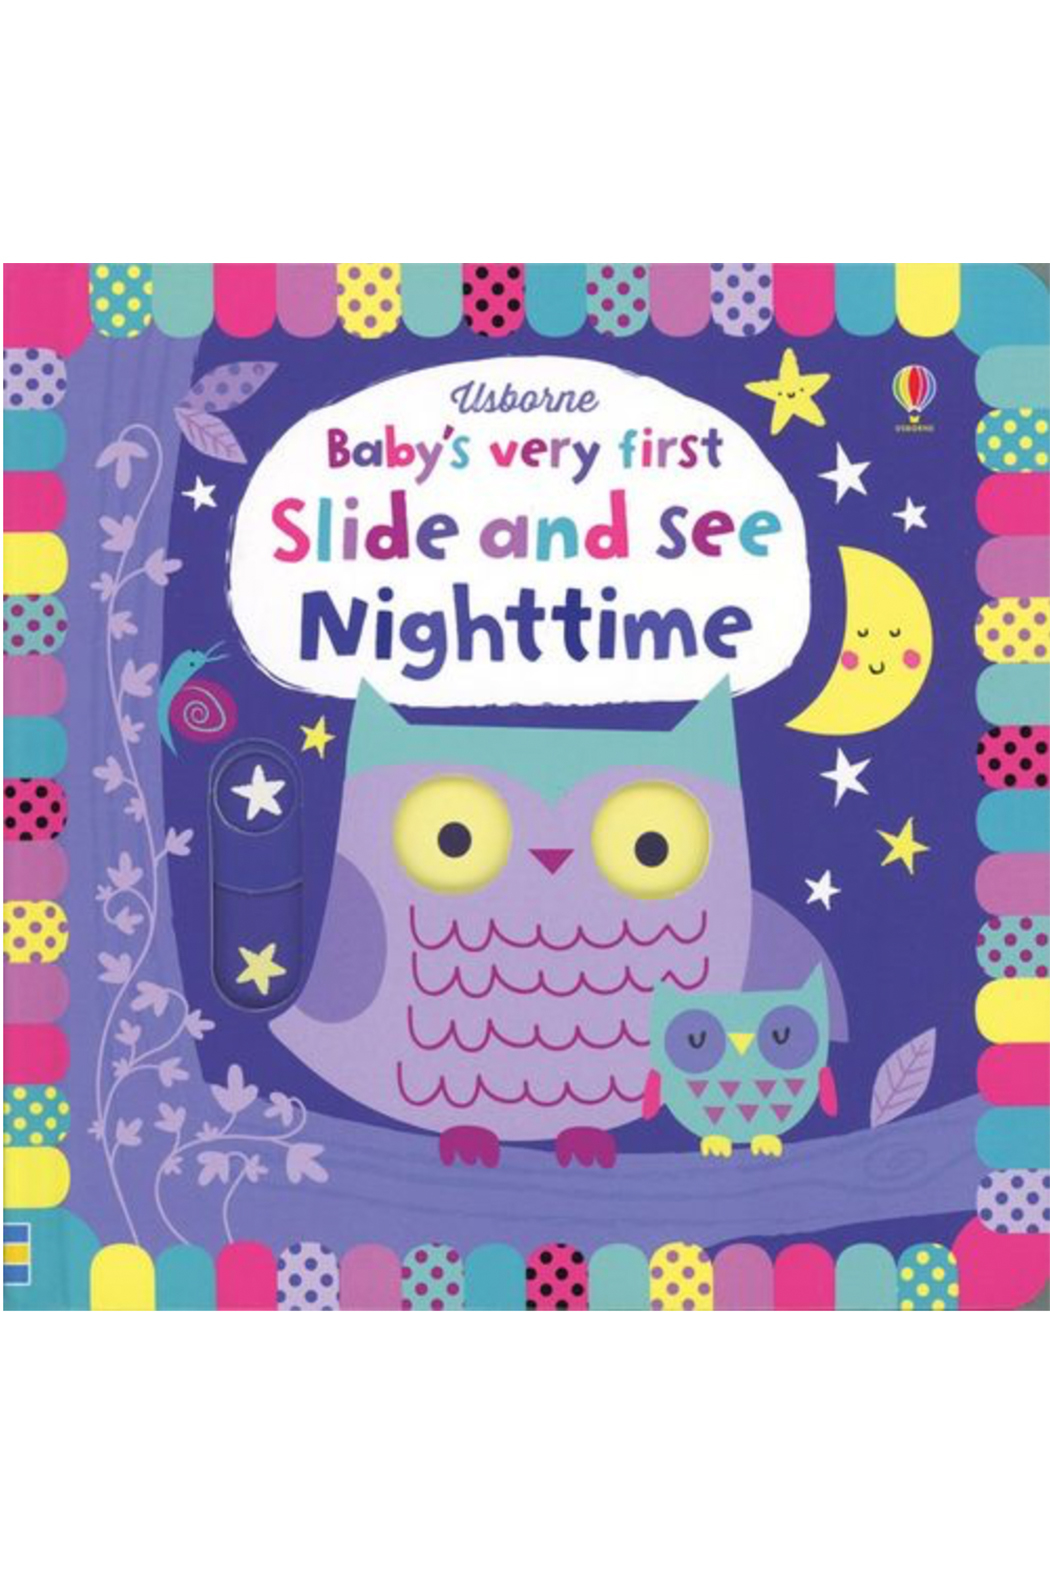 Usborne Baby's very first Slide and See Nighttime - Main Image